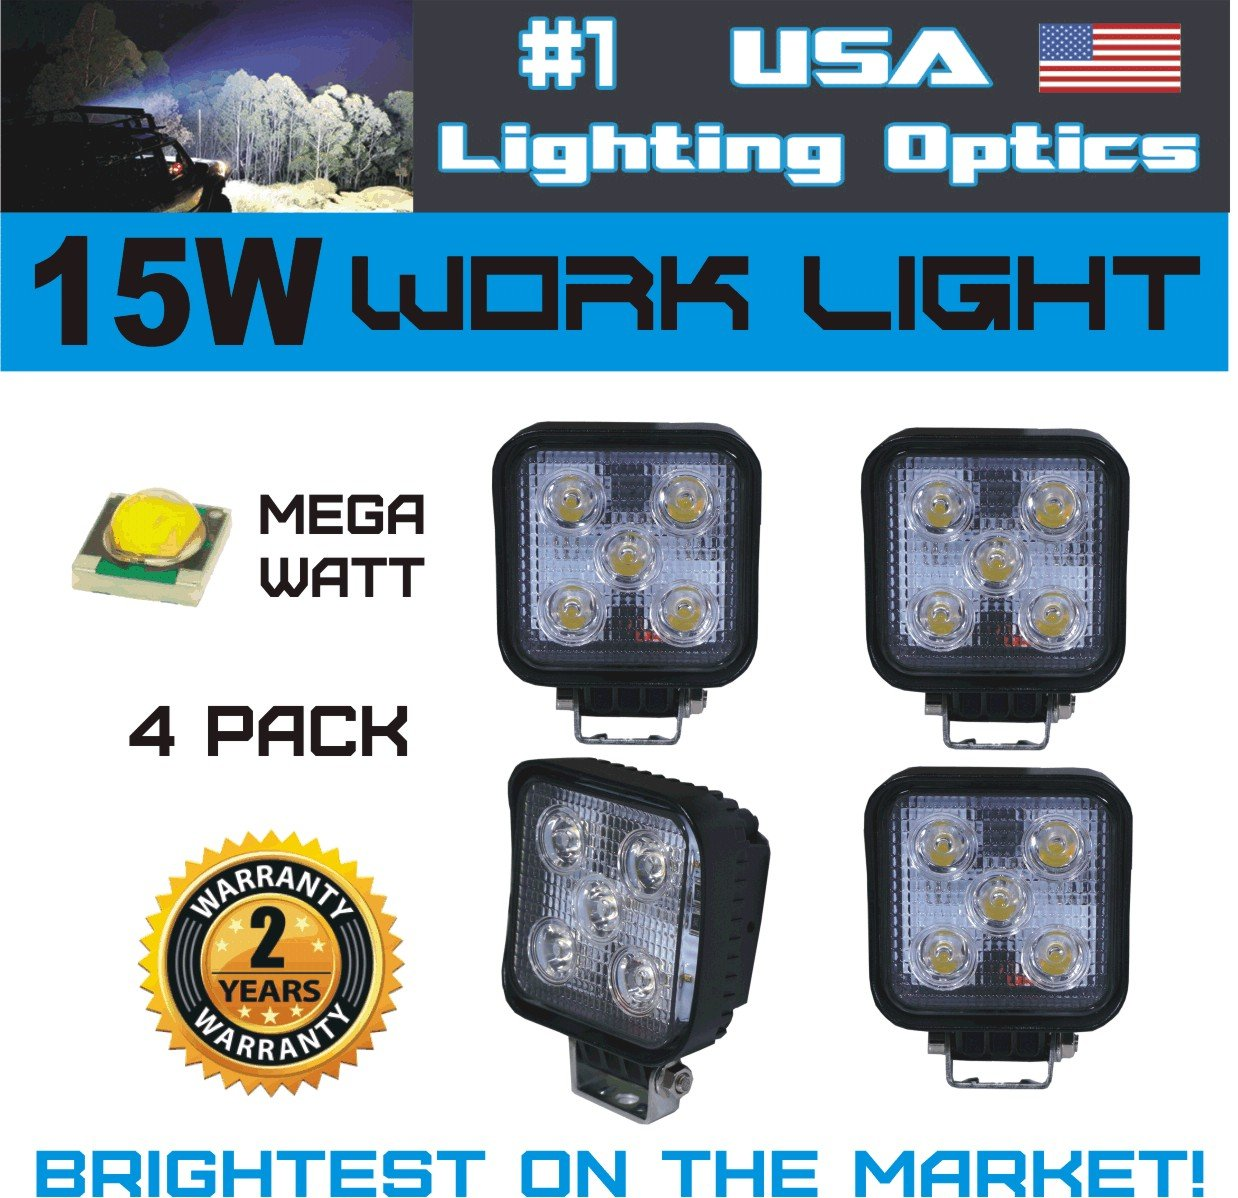 1 15w square led work light lamp by usa lighting optics 4 pack off road high power atv jeep wrangler 4x4 rv trailer boat tractor truck excavator fork